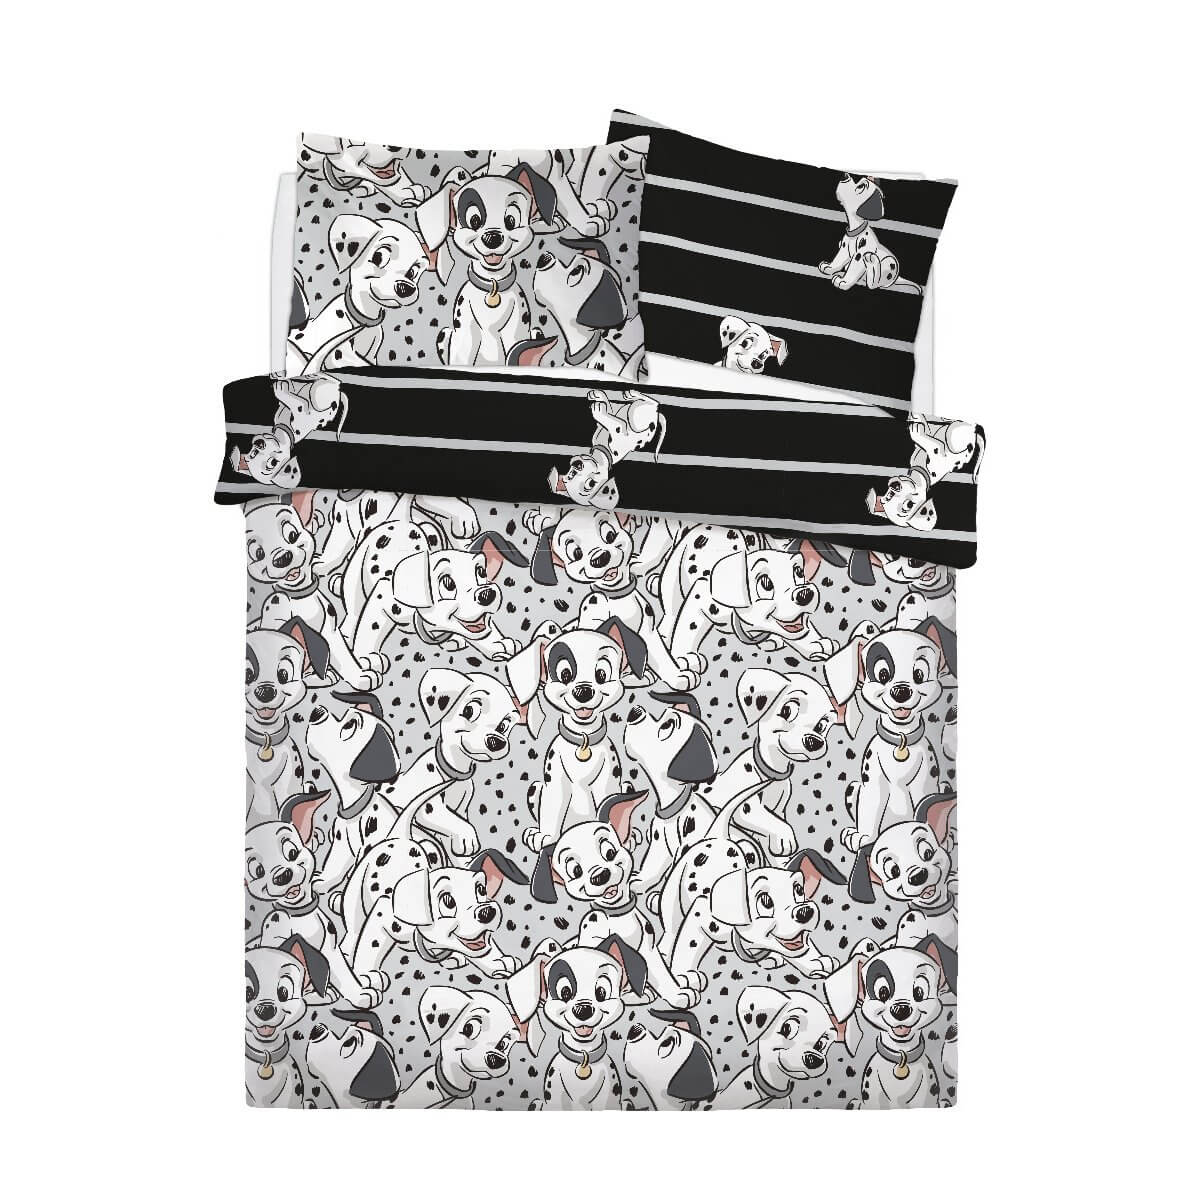 101 Dalmatians Hop Skip and Jump Bedding - Reversible Duvet Cover and Pillowcase Set